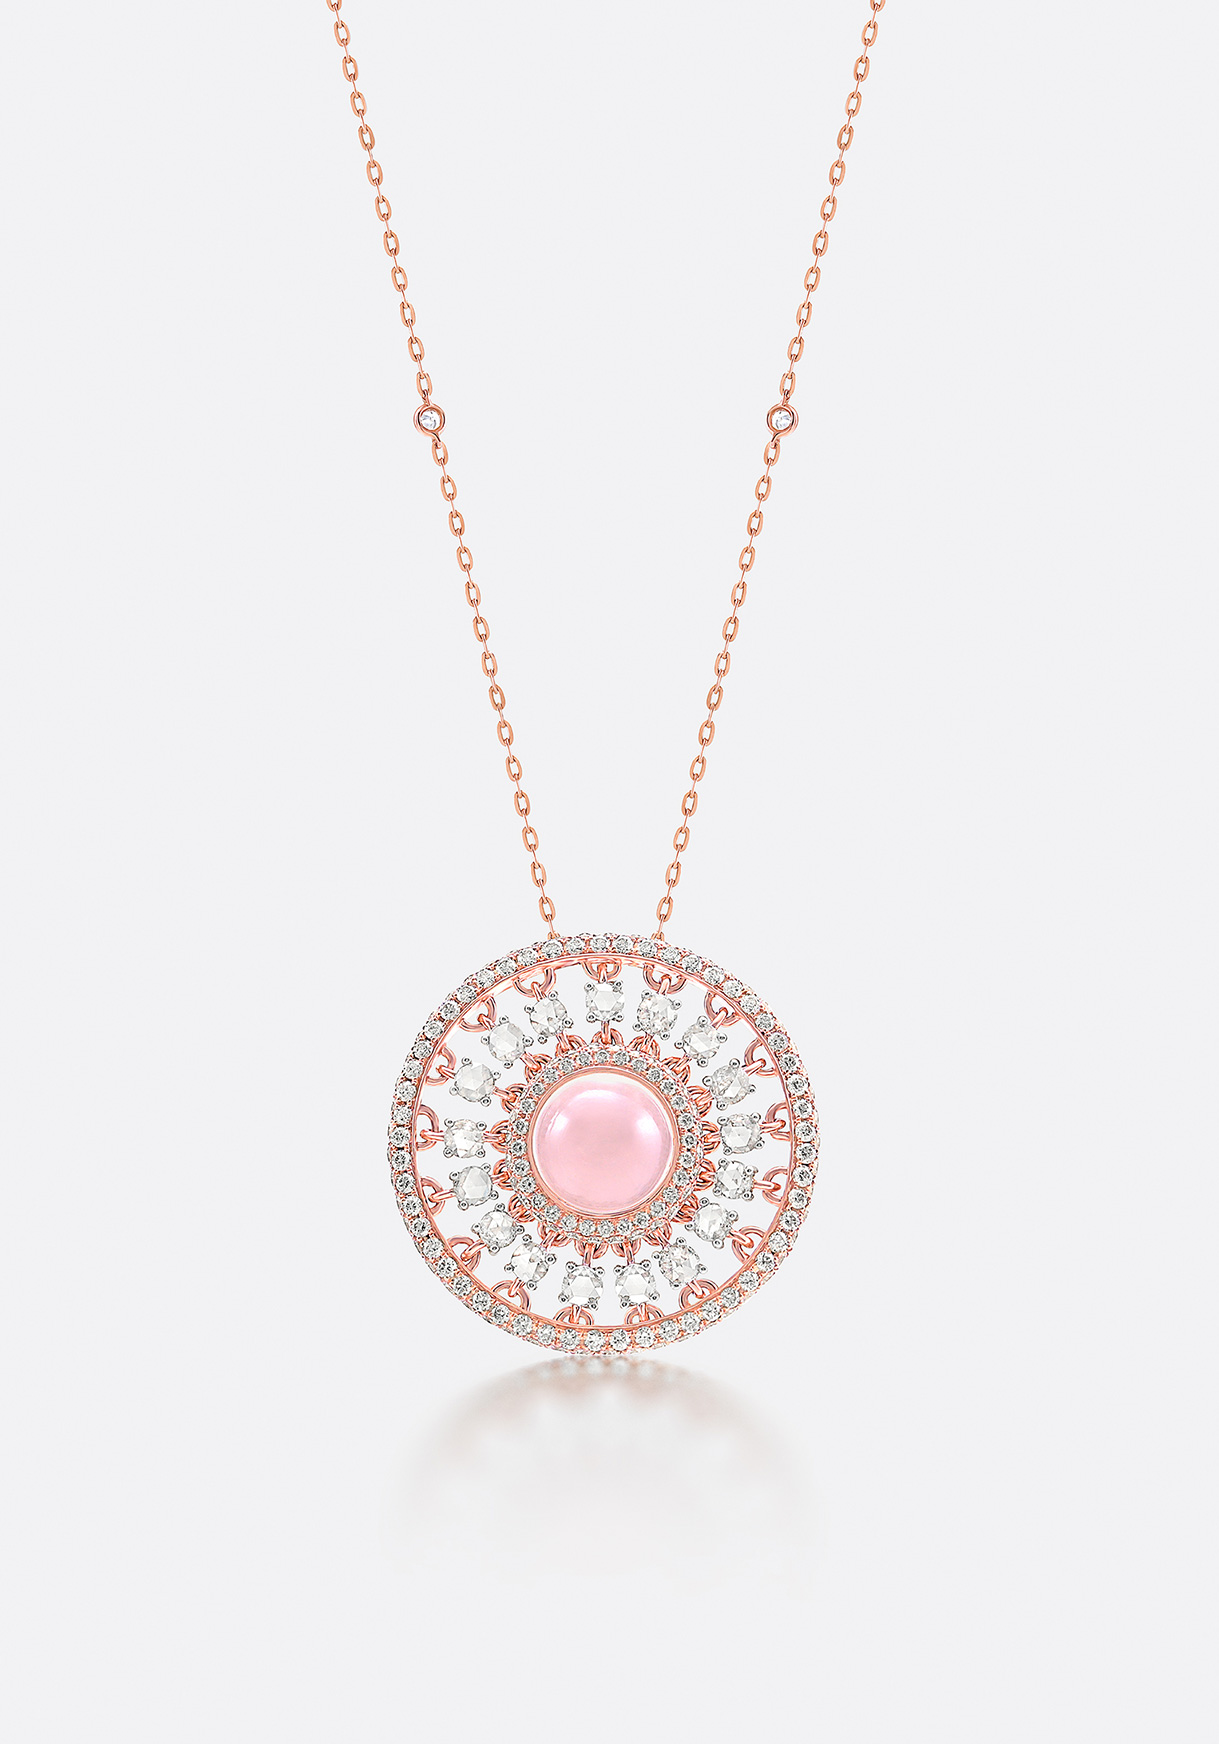 Pendant - rose-cut and full-cut diamonds sparkle brightly on rose gold.